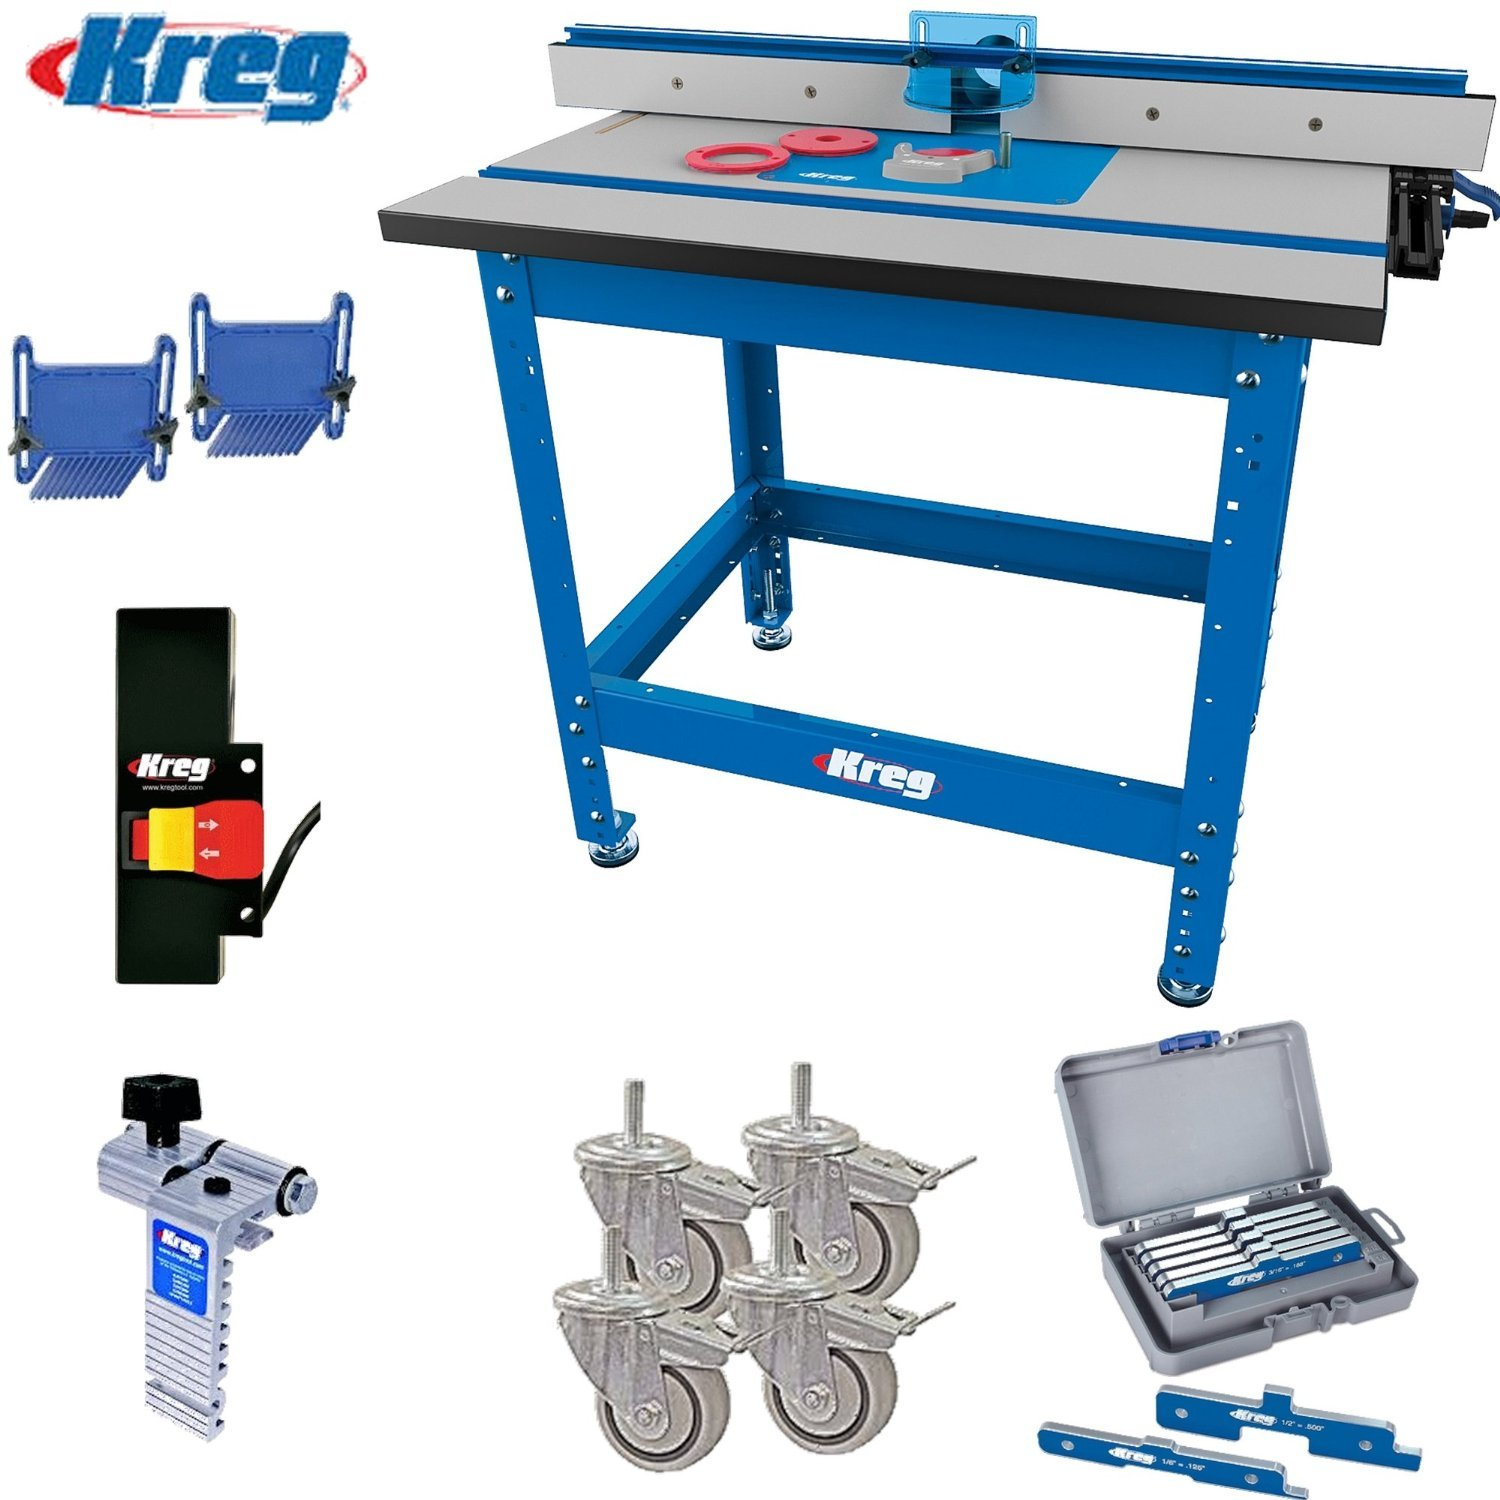 Kreg prs1045 krs1035 prs1025 prs1015 router table set amazon greentooth Image collections